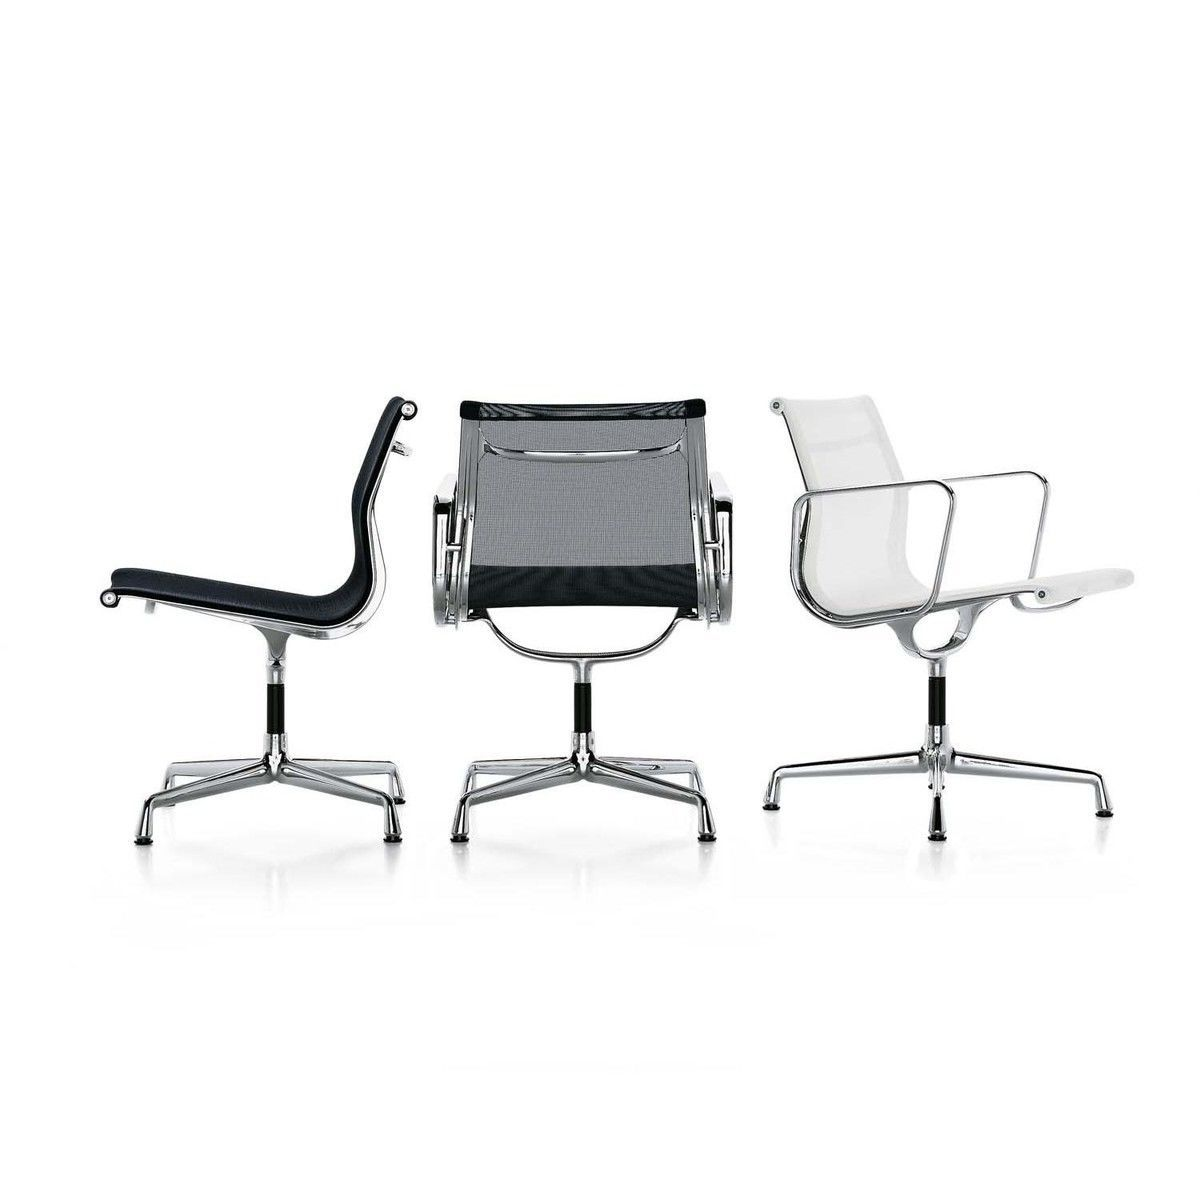 vitra ea 108 aluminium chair b rostuhl vitra drehst hle sitzm bel m bel. Black Bedroom Furniture Sets. Home Design Ideas